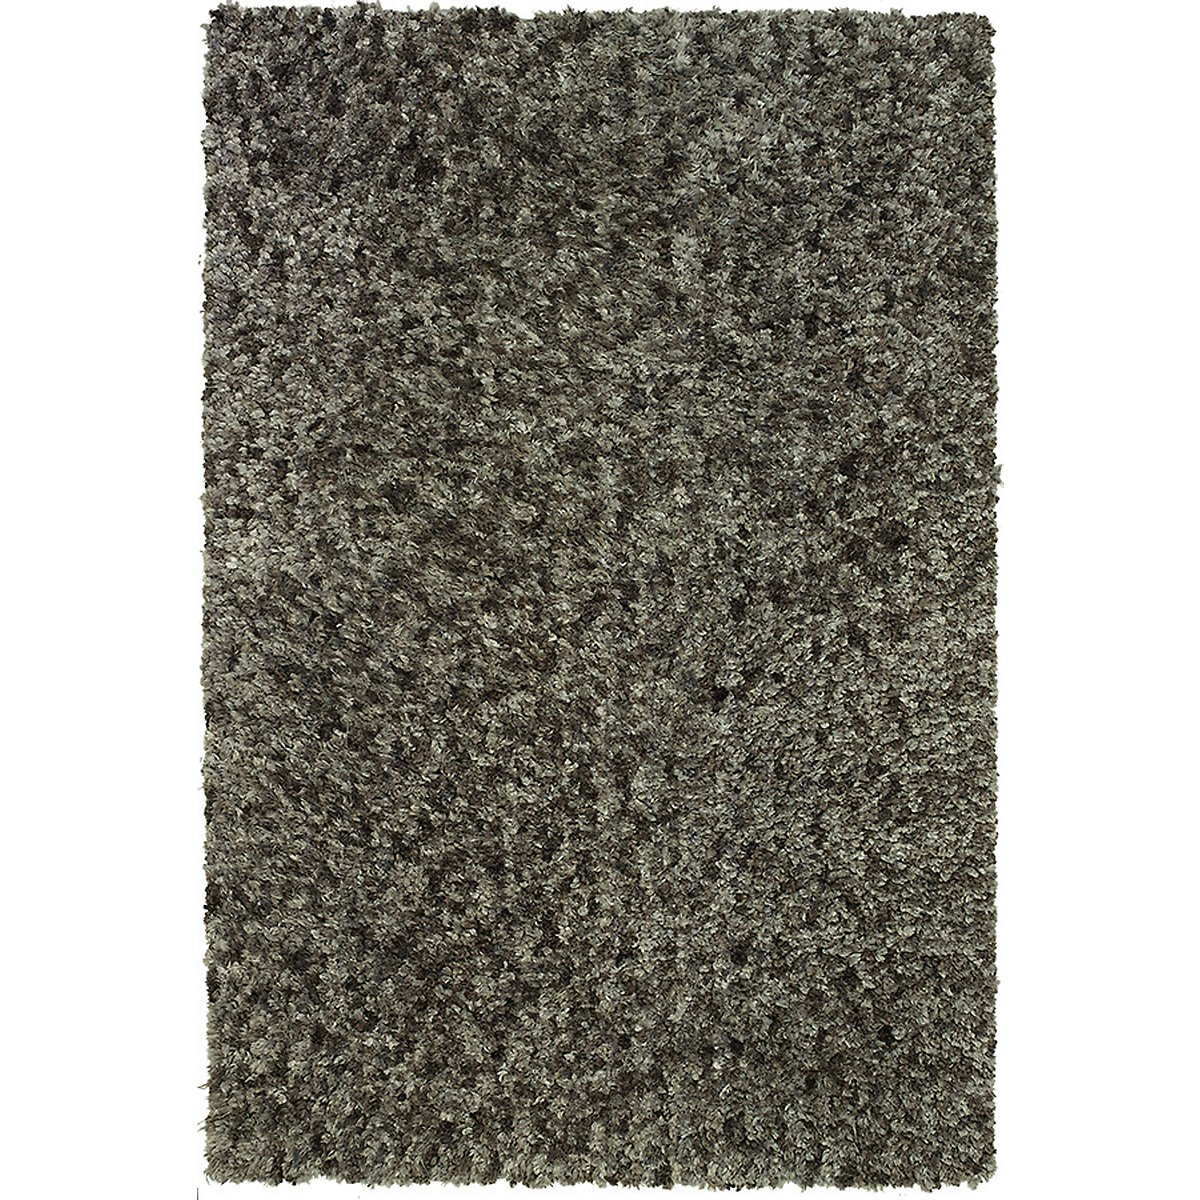 Utopia Gray 8X10 Area Rug